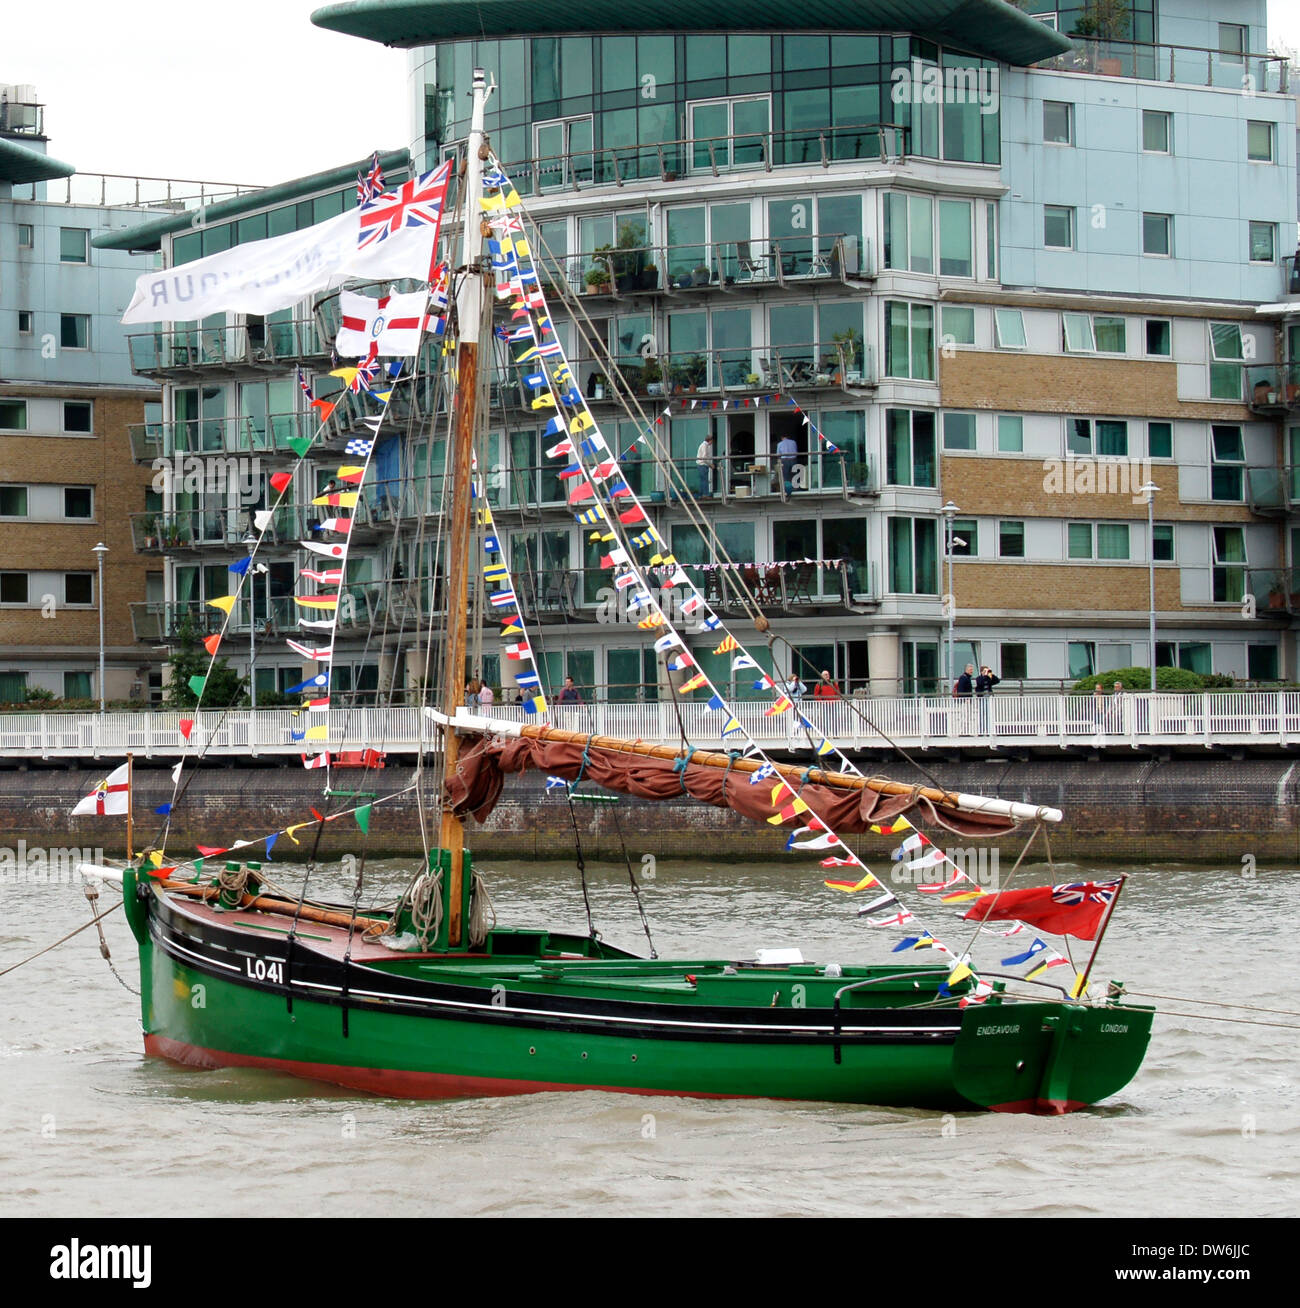 'Endeavour LO41' is a cockle boat, built in 1926. She is owned by The Endeavour Trust. A Dunkirk veteran. Stock Photo